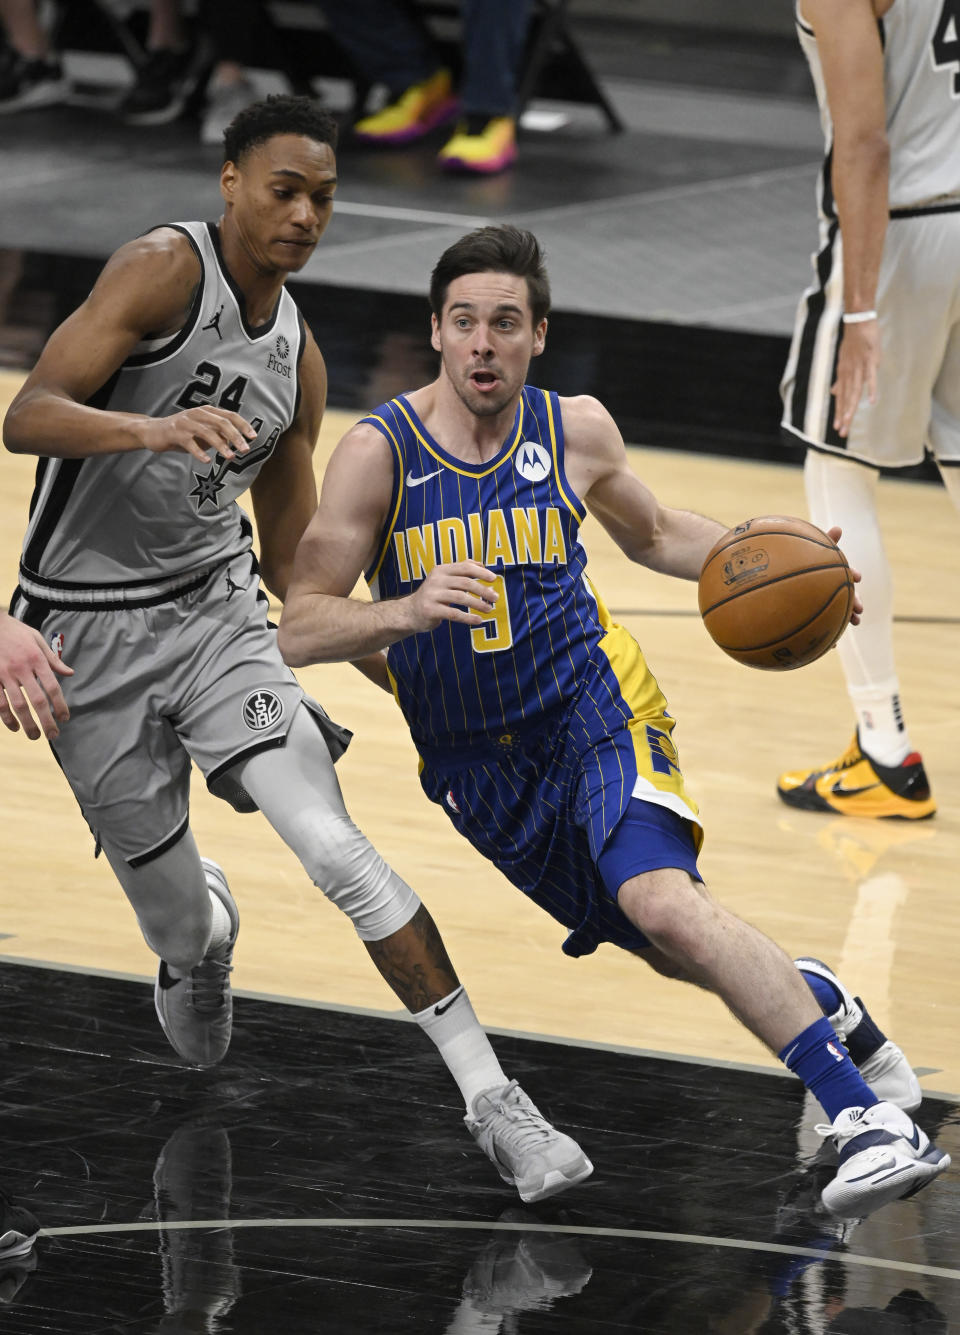 Indiana Pacers' T.J. McConnell, right, drives around San Antonio Spurs' Devin Vassell during the second half of an NBA basketball game Saturday, April 3, 2021, in San Antonio. (AP Photo/Darren Abate)